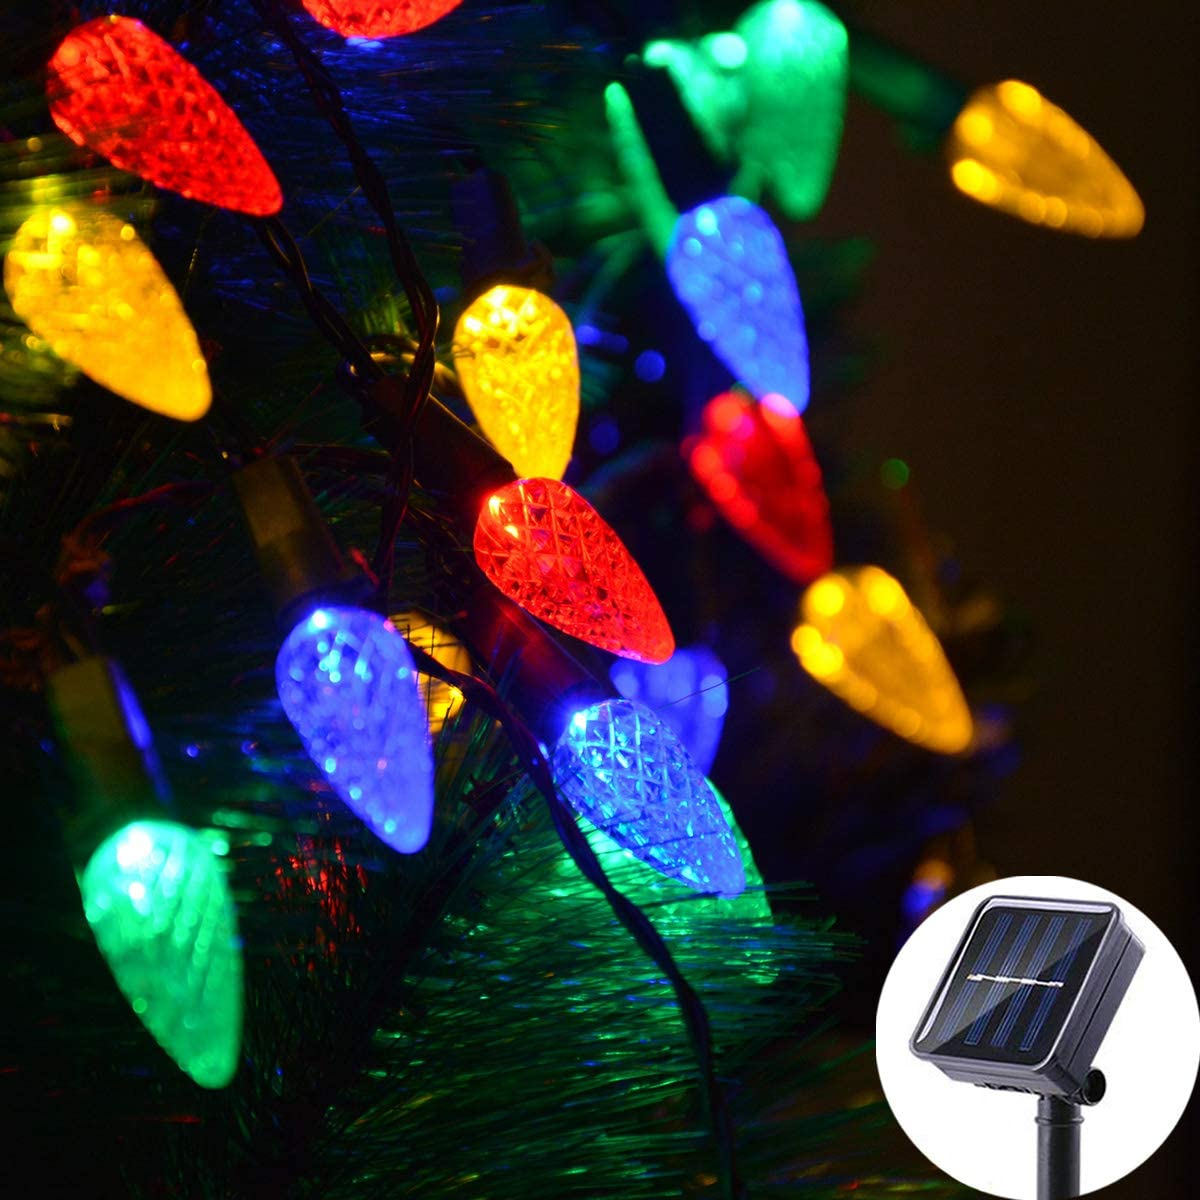 Solar Christmas Lights Outdoor C6 Strawberry String Lights, LED Christmas Fairy Lights 50 LEDs Solar Operated Rechargeable Garden Lights for Christmas Tree, Holiday, Arbor Decor Multicolor, 8 Modes